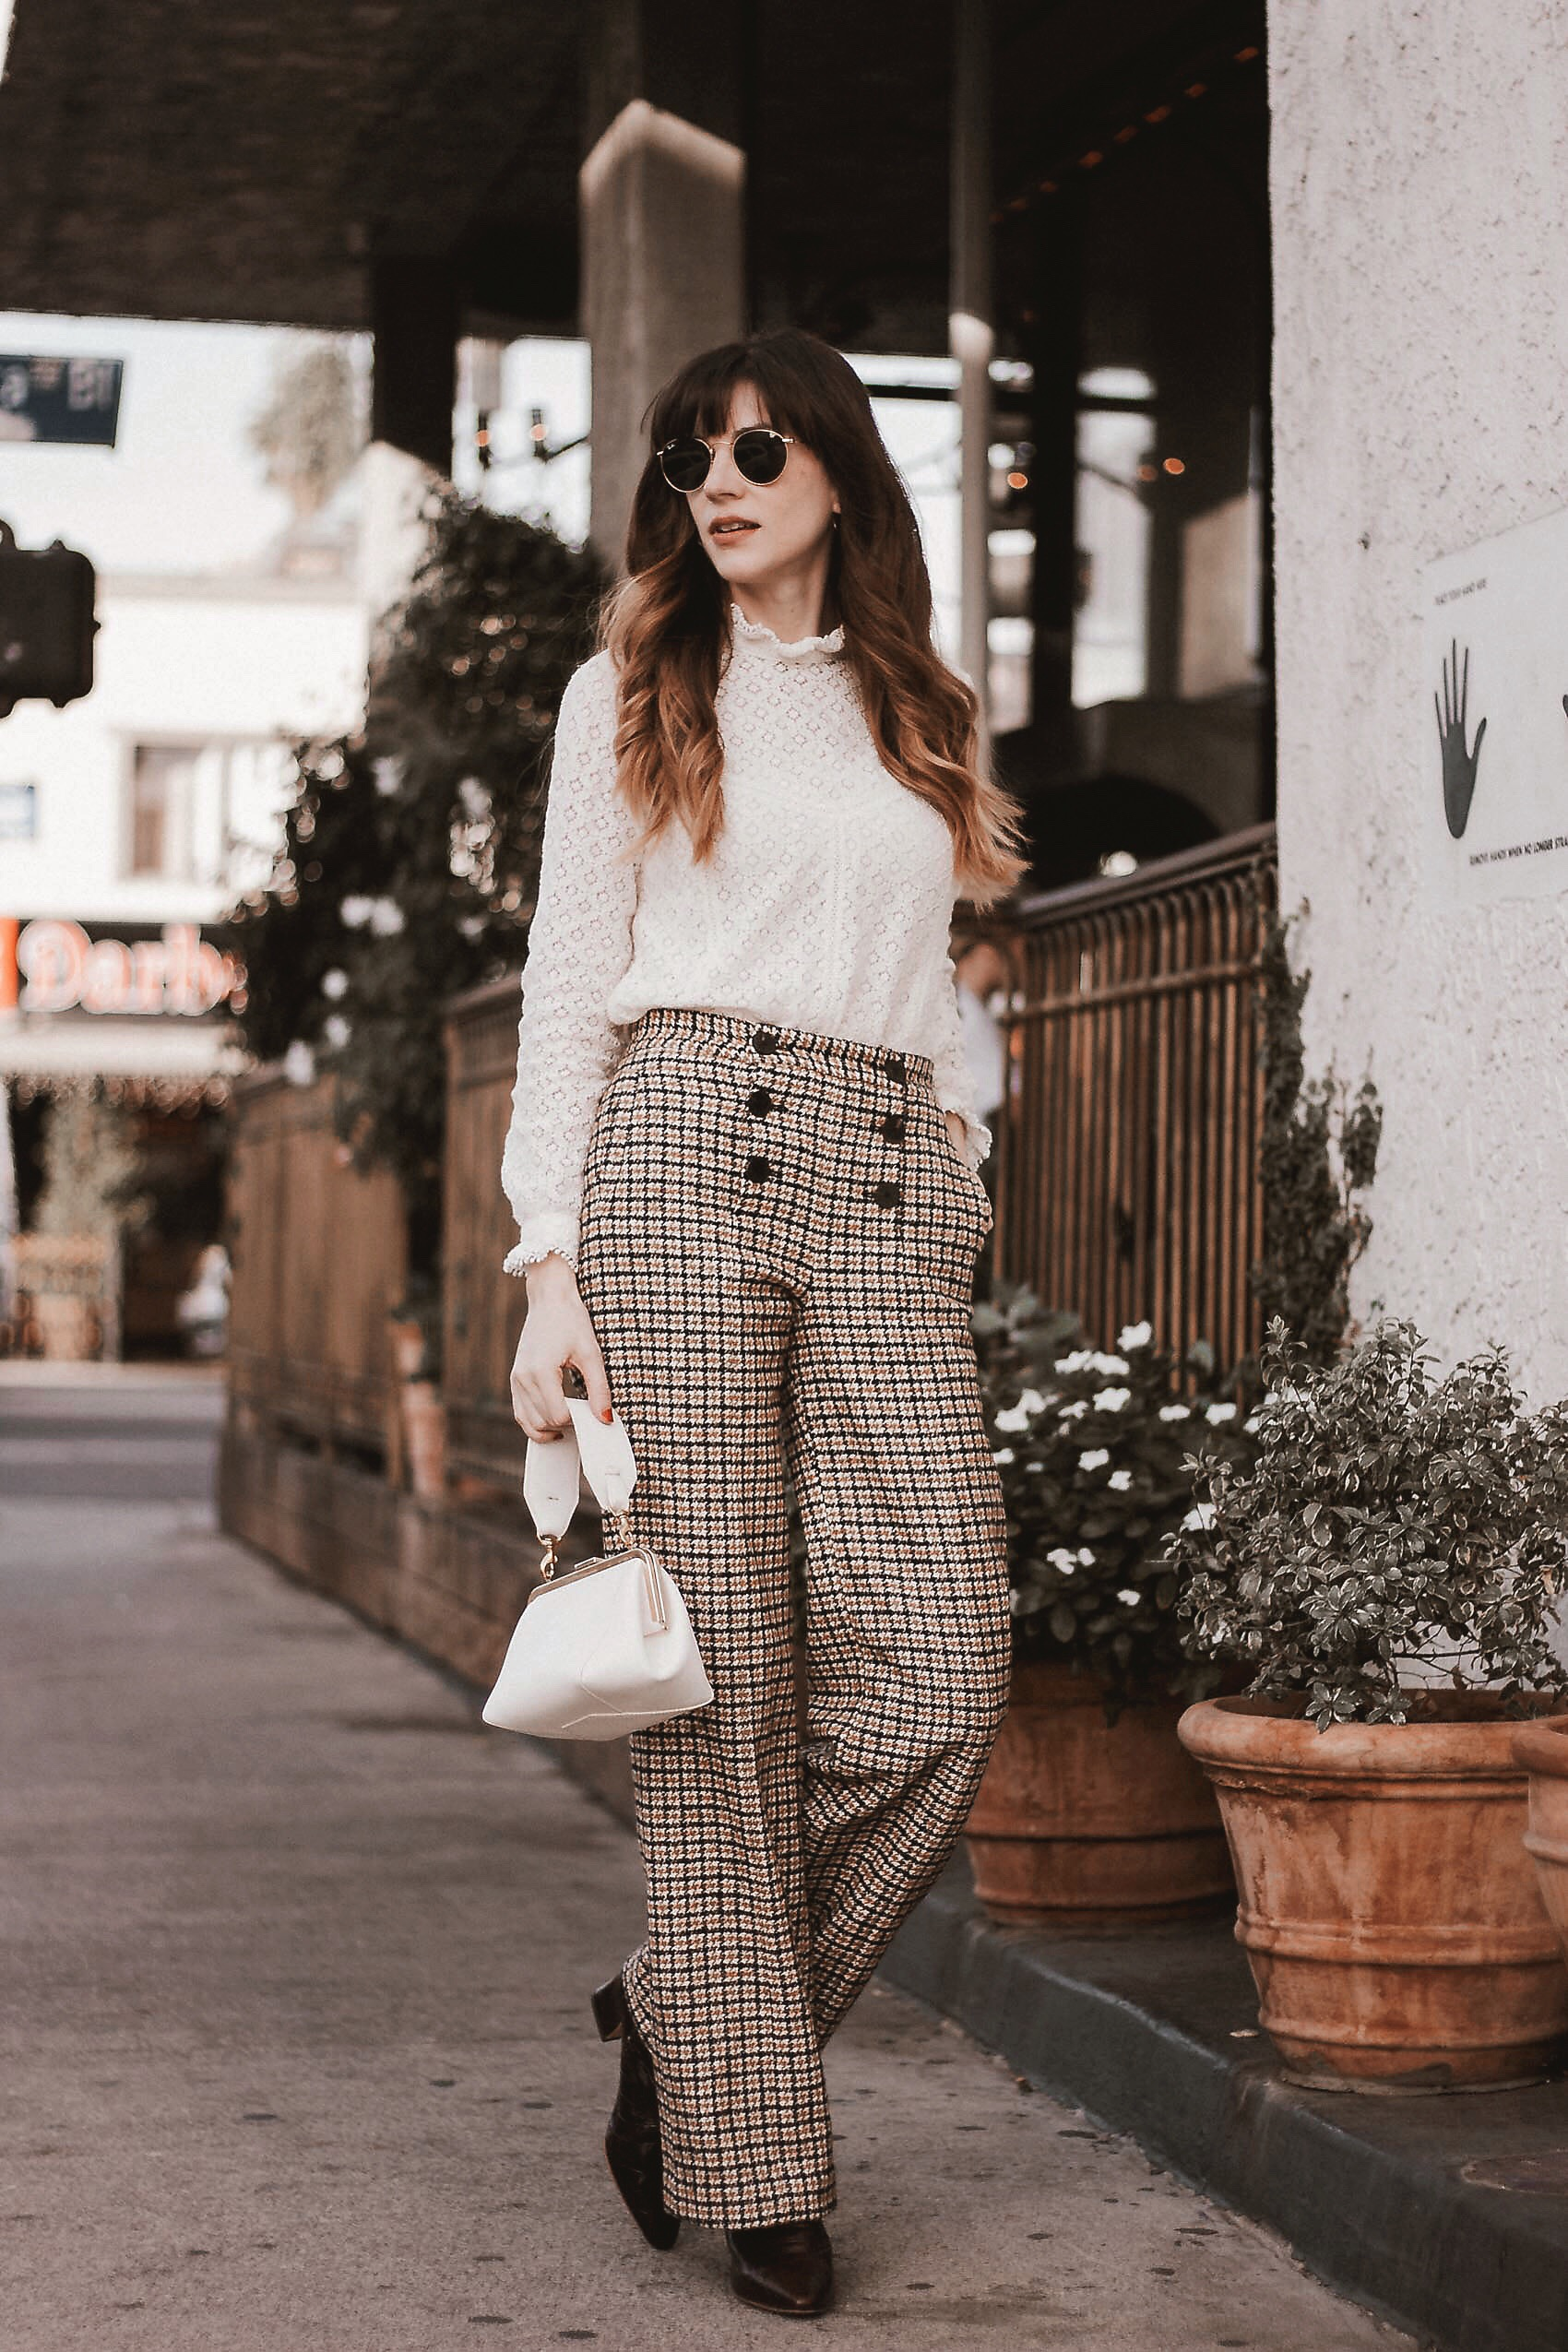 Sezane lace top, sezane plaid pants, Miista croc boots